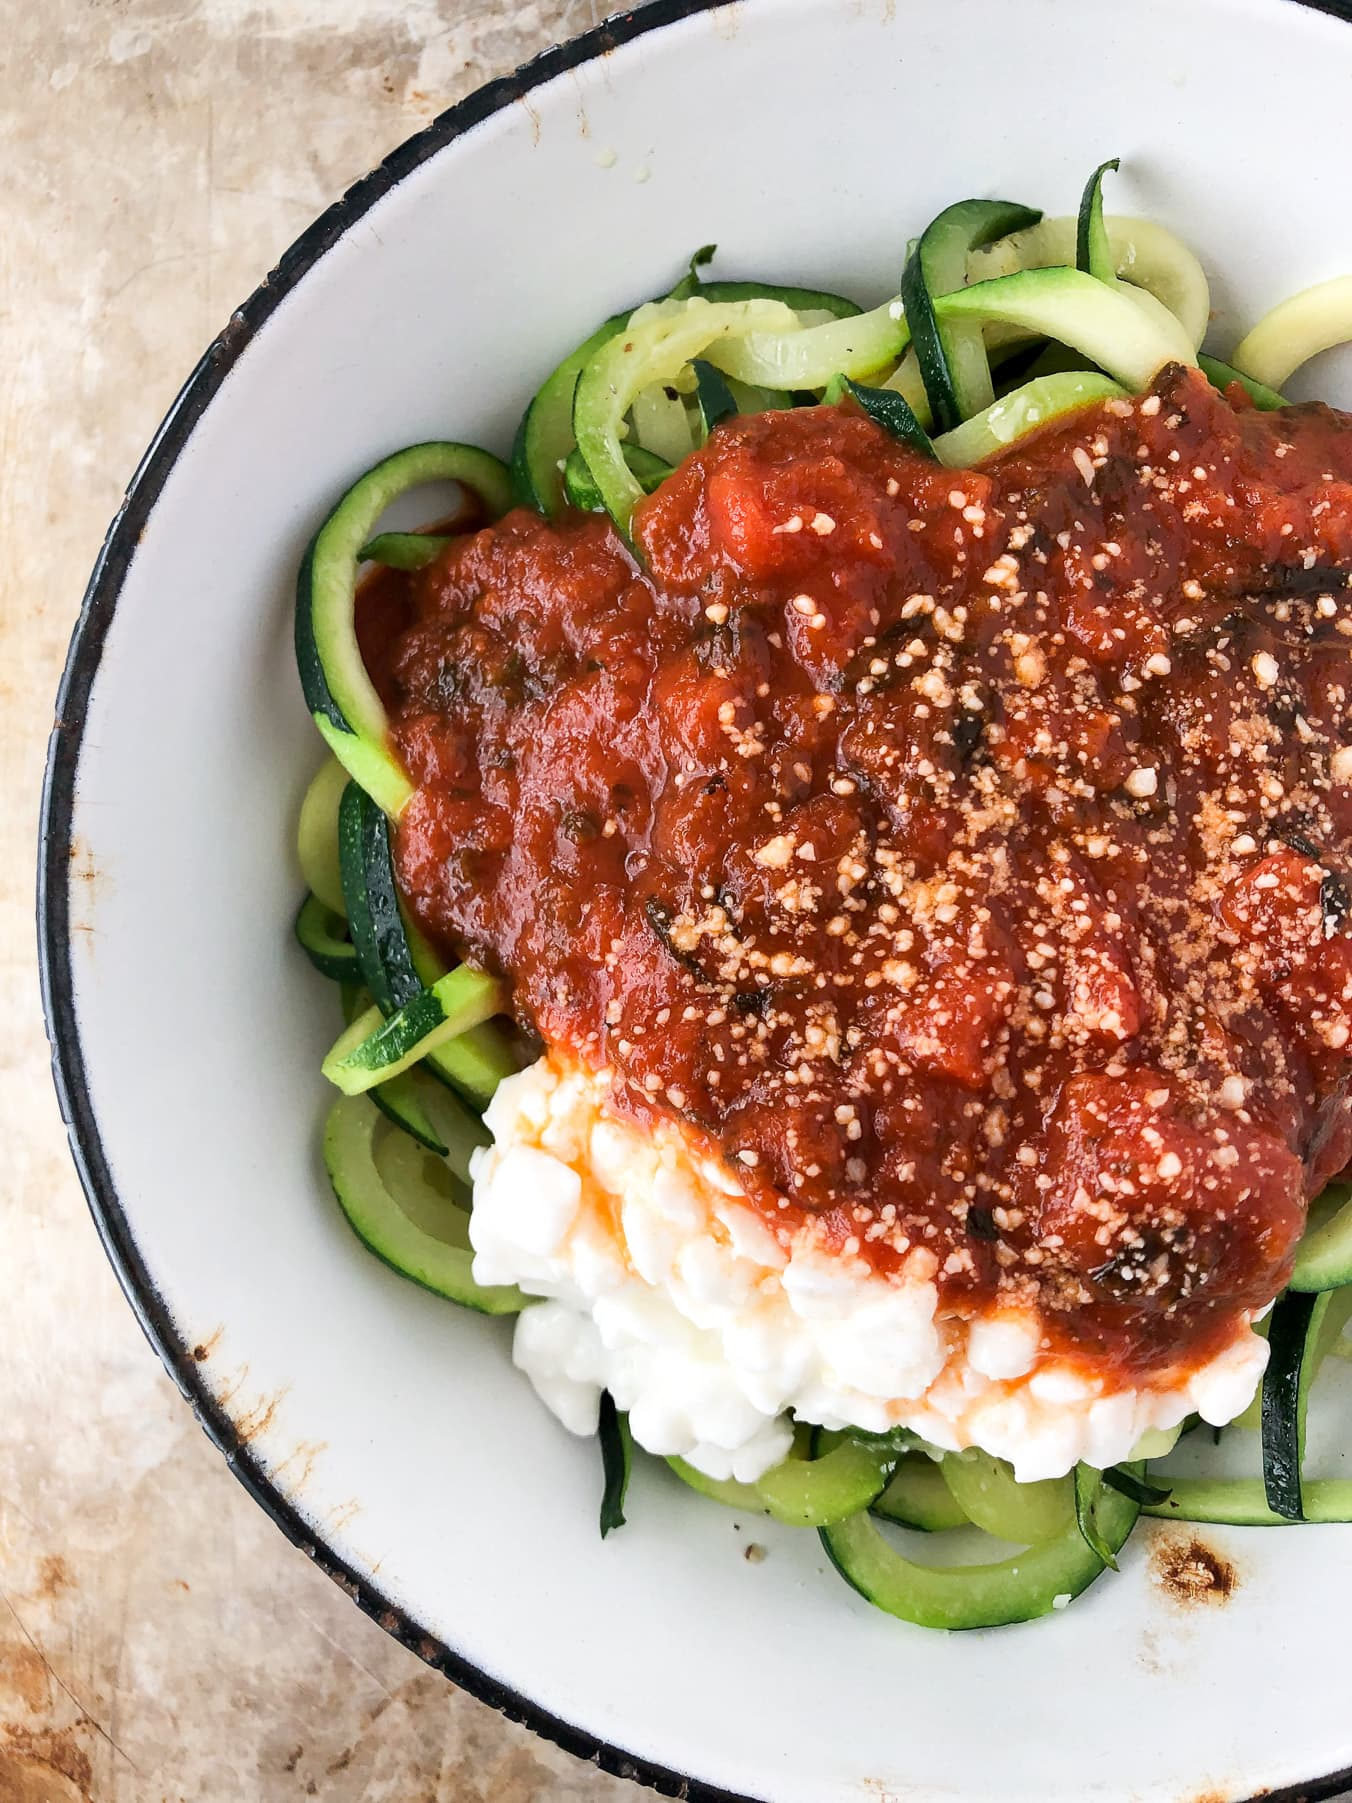 Zoodle Noodle Spaghetti Dinner Bowl